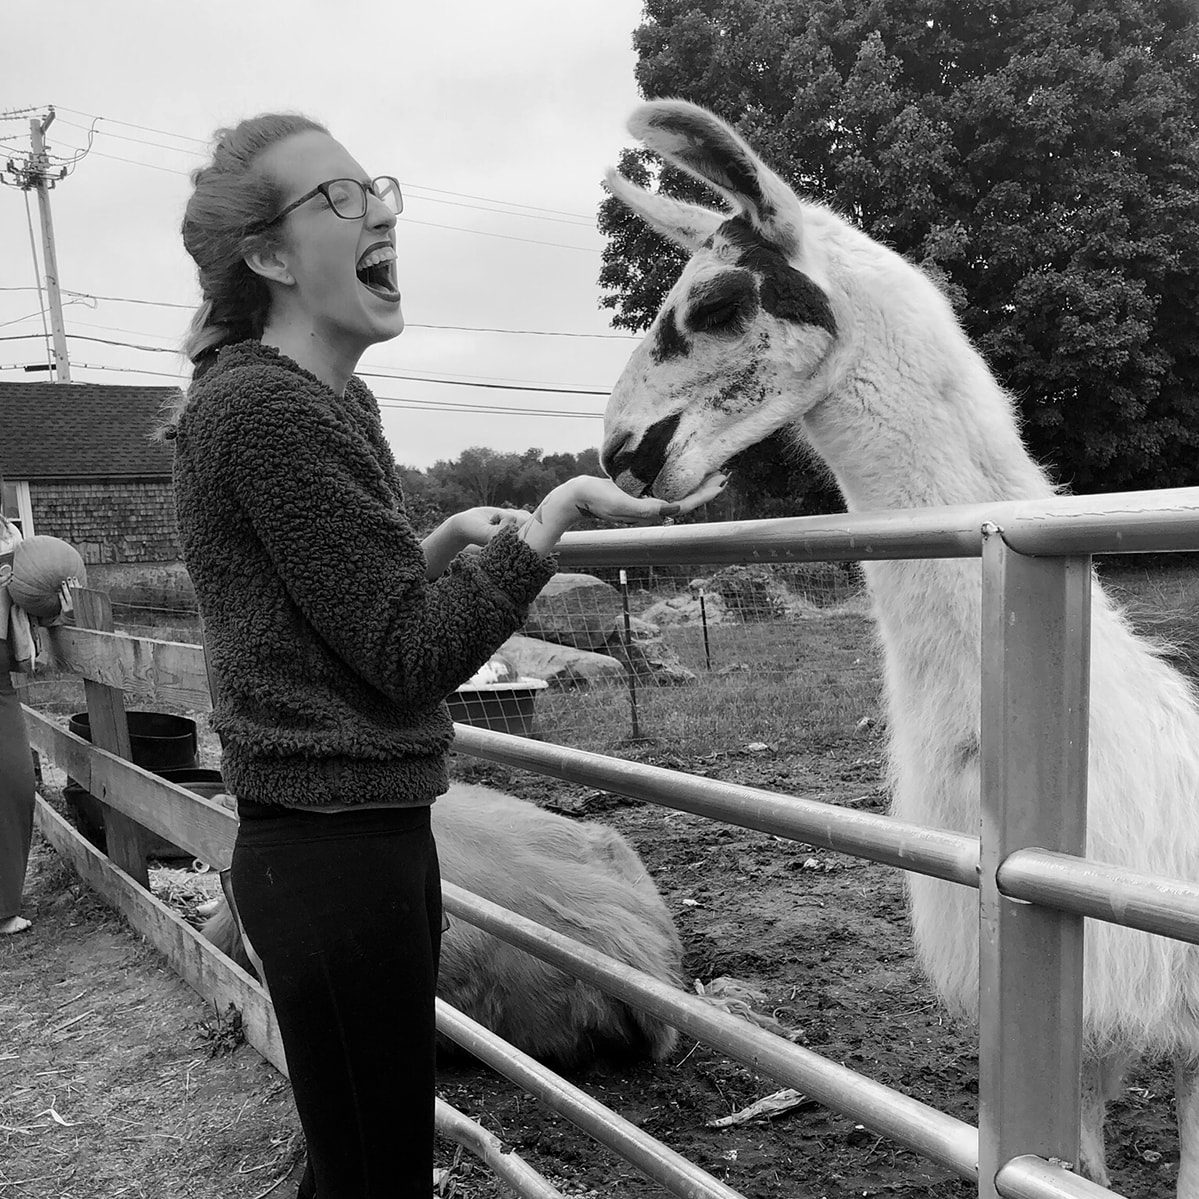 Black and white image of Kyri laughing while petting a llama